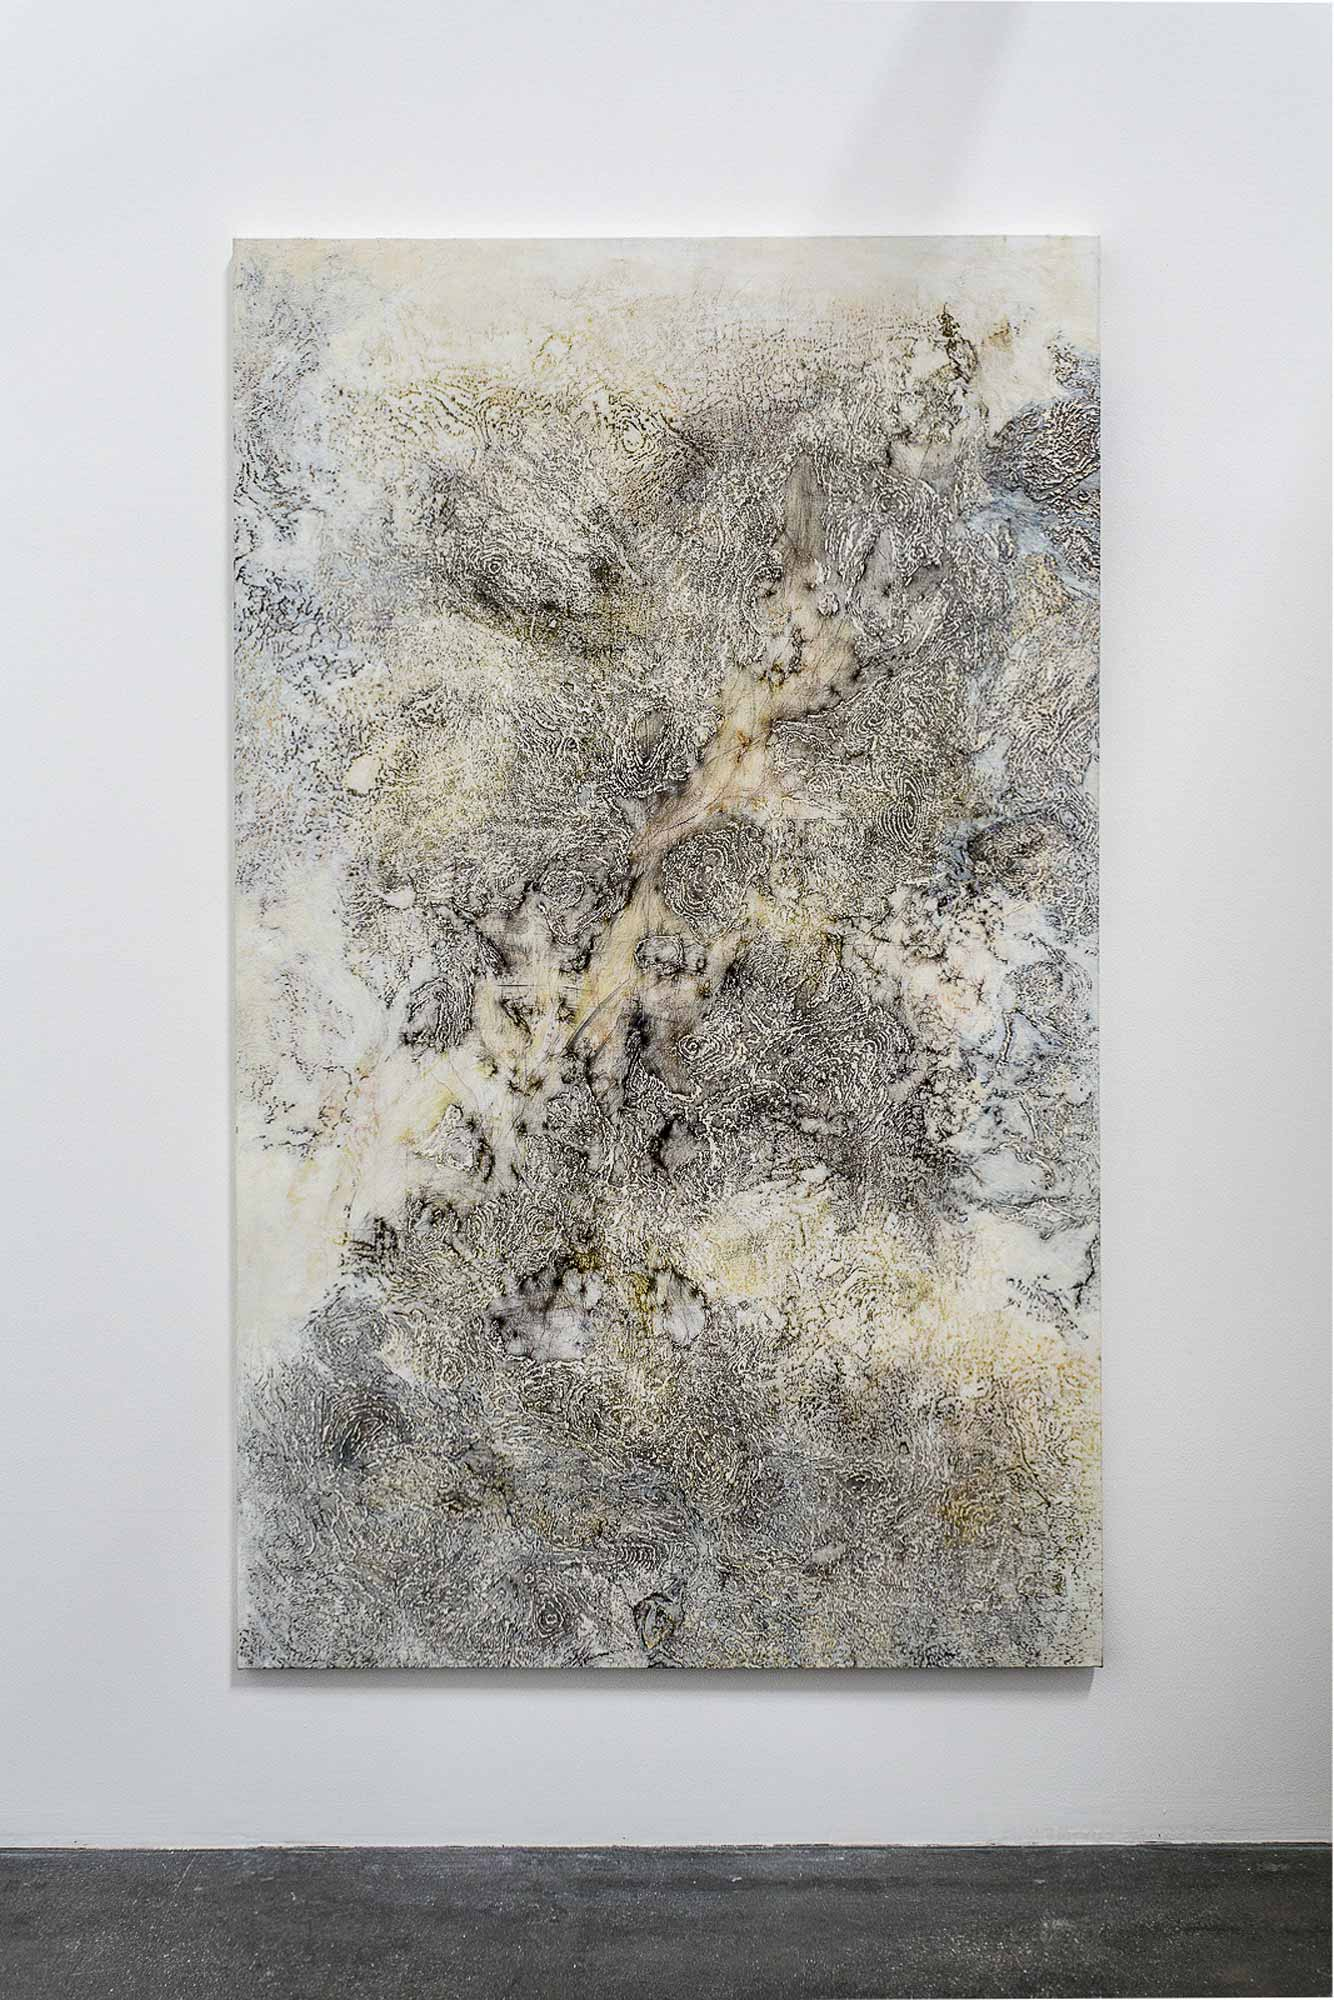 Nadia_Kaabi-Linke, A Short Story of Salt and Sand, 2014, transfer prints, mixed media, 230 x 140 cm; photo: Mustafa Aboobaker